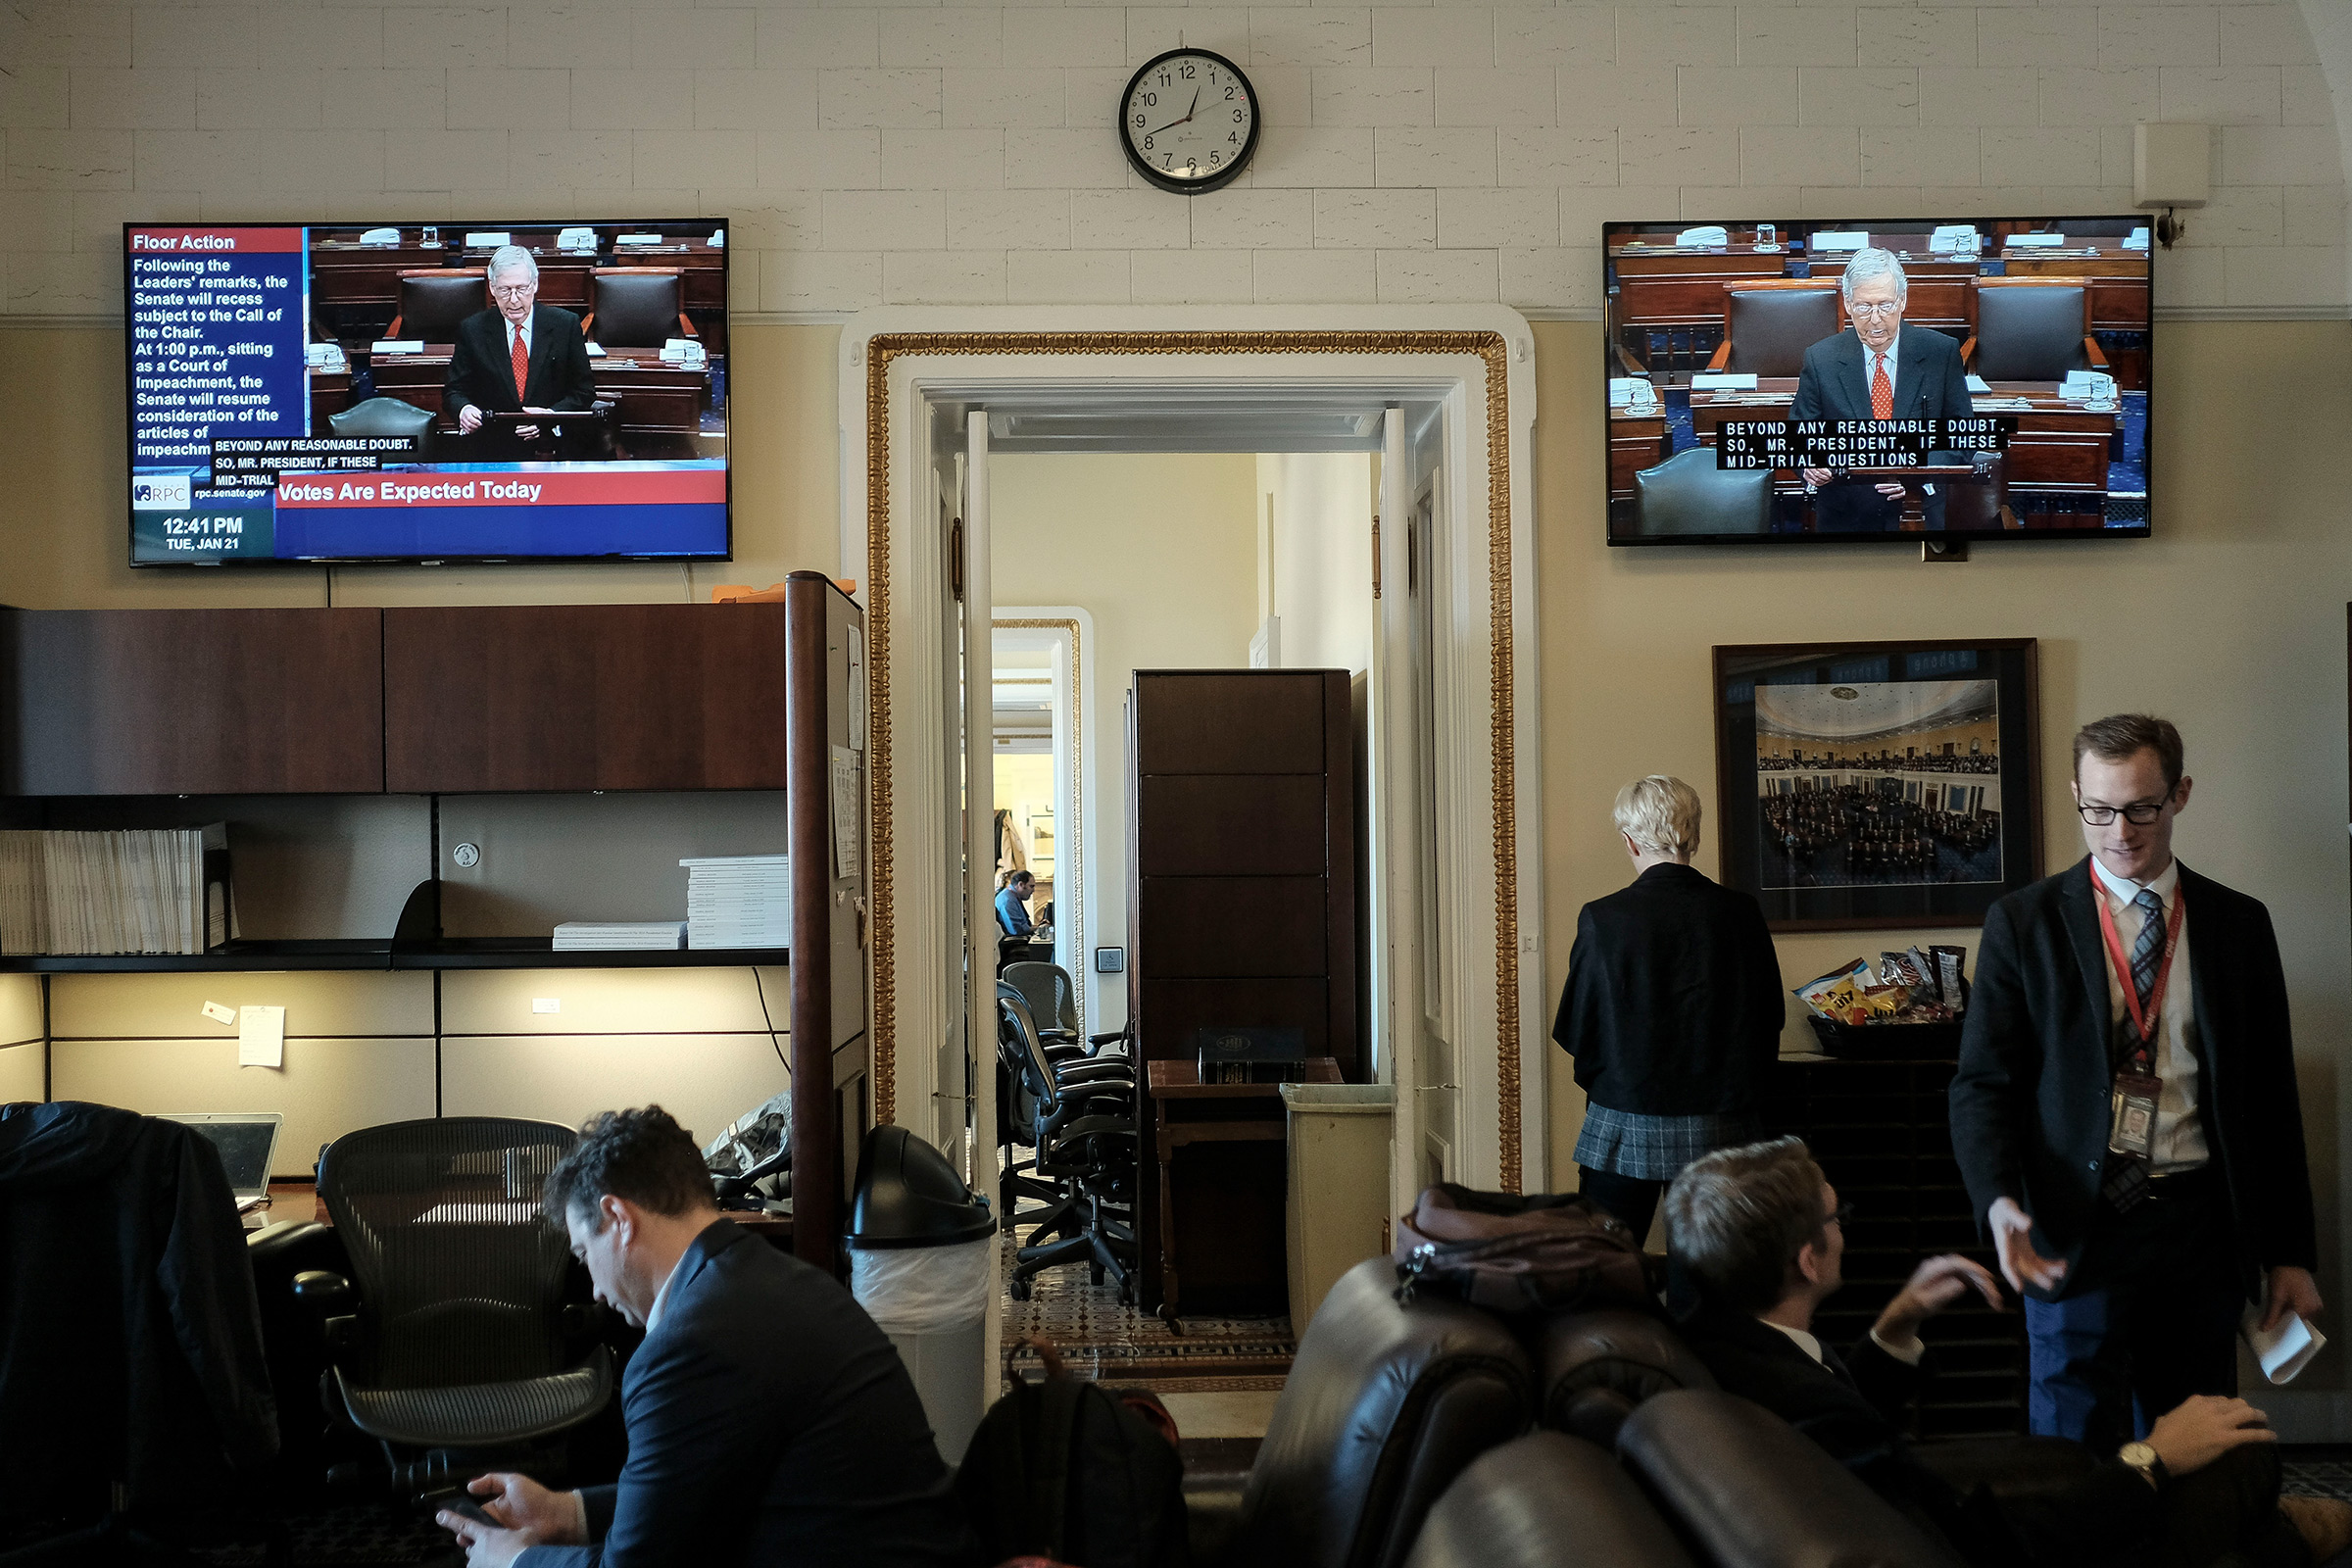 Reporters watch the senate impeachment trial begin in the press gallery off the senate floor at the Capitol in Washington, D.C. on Jan. 21, 2020.